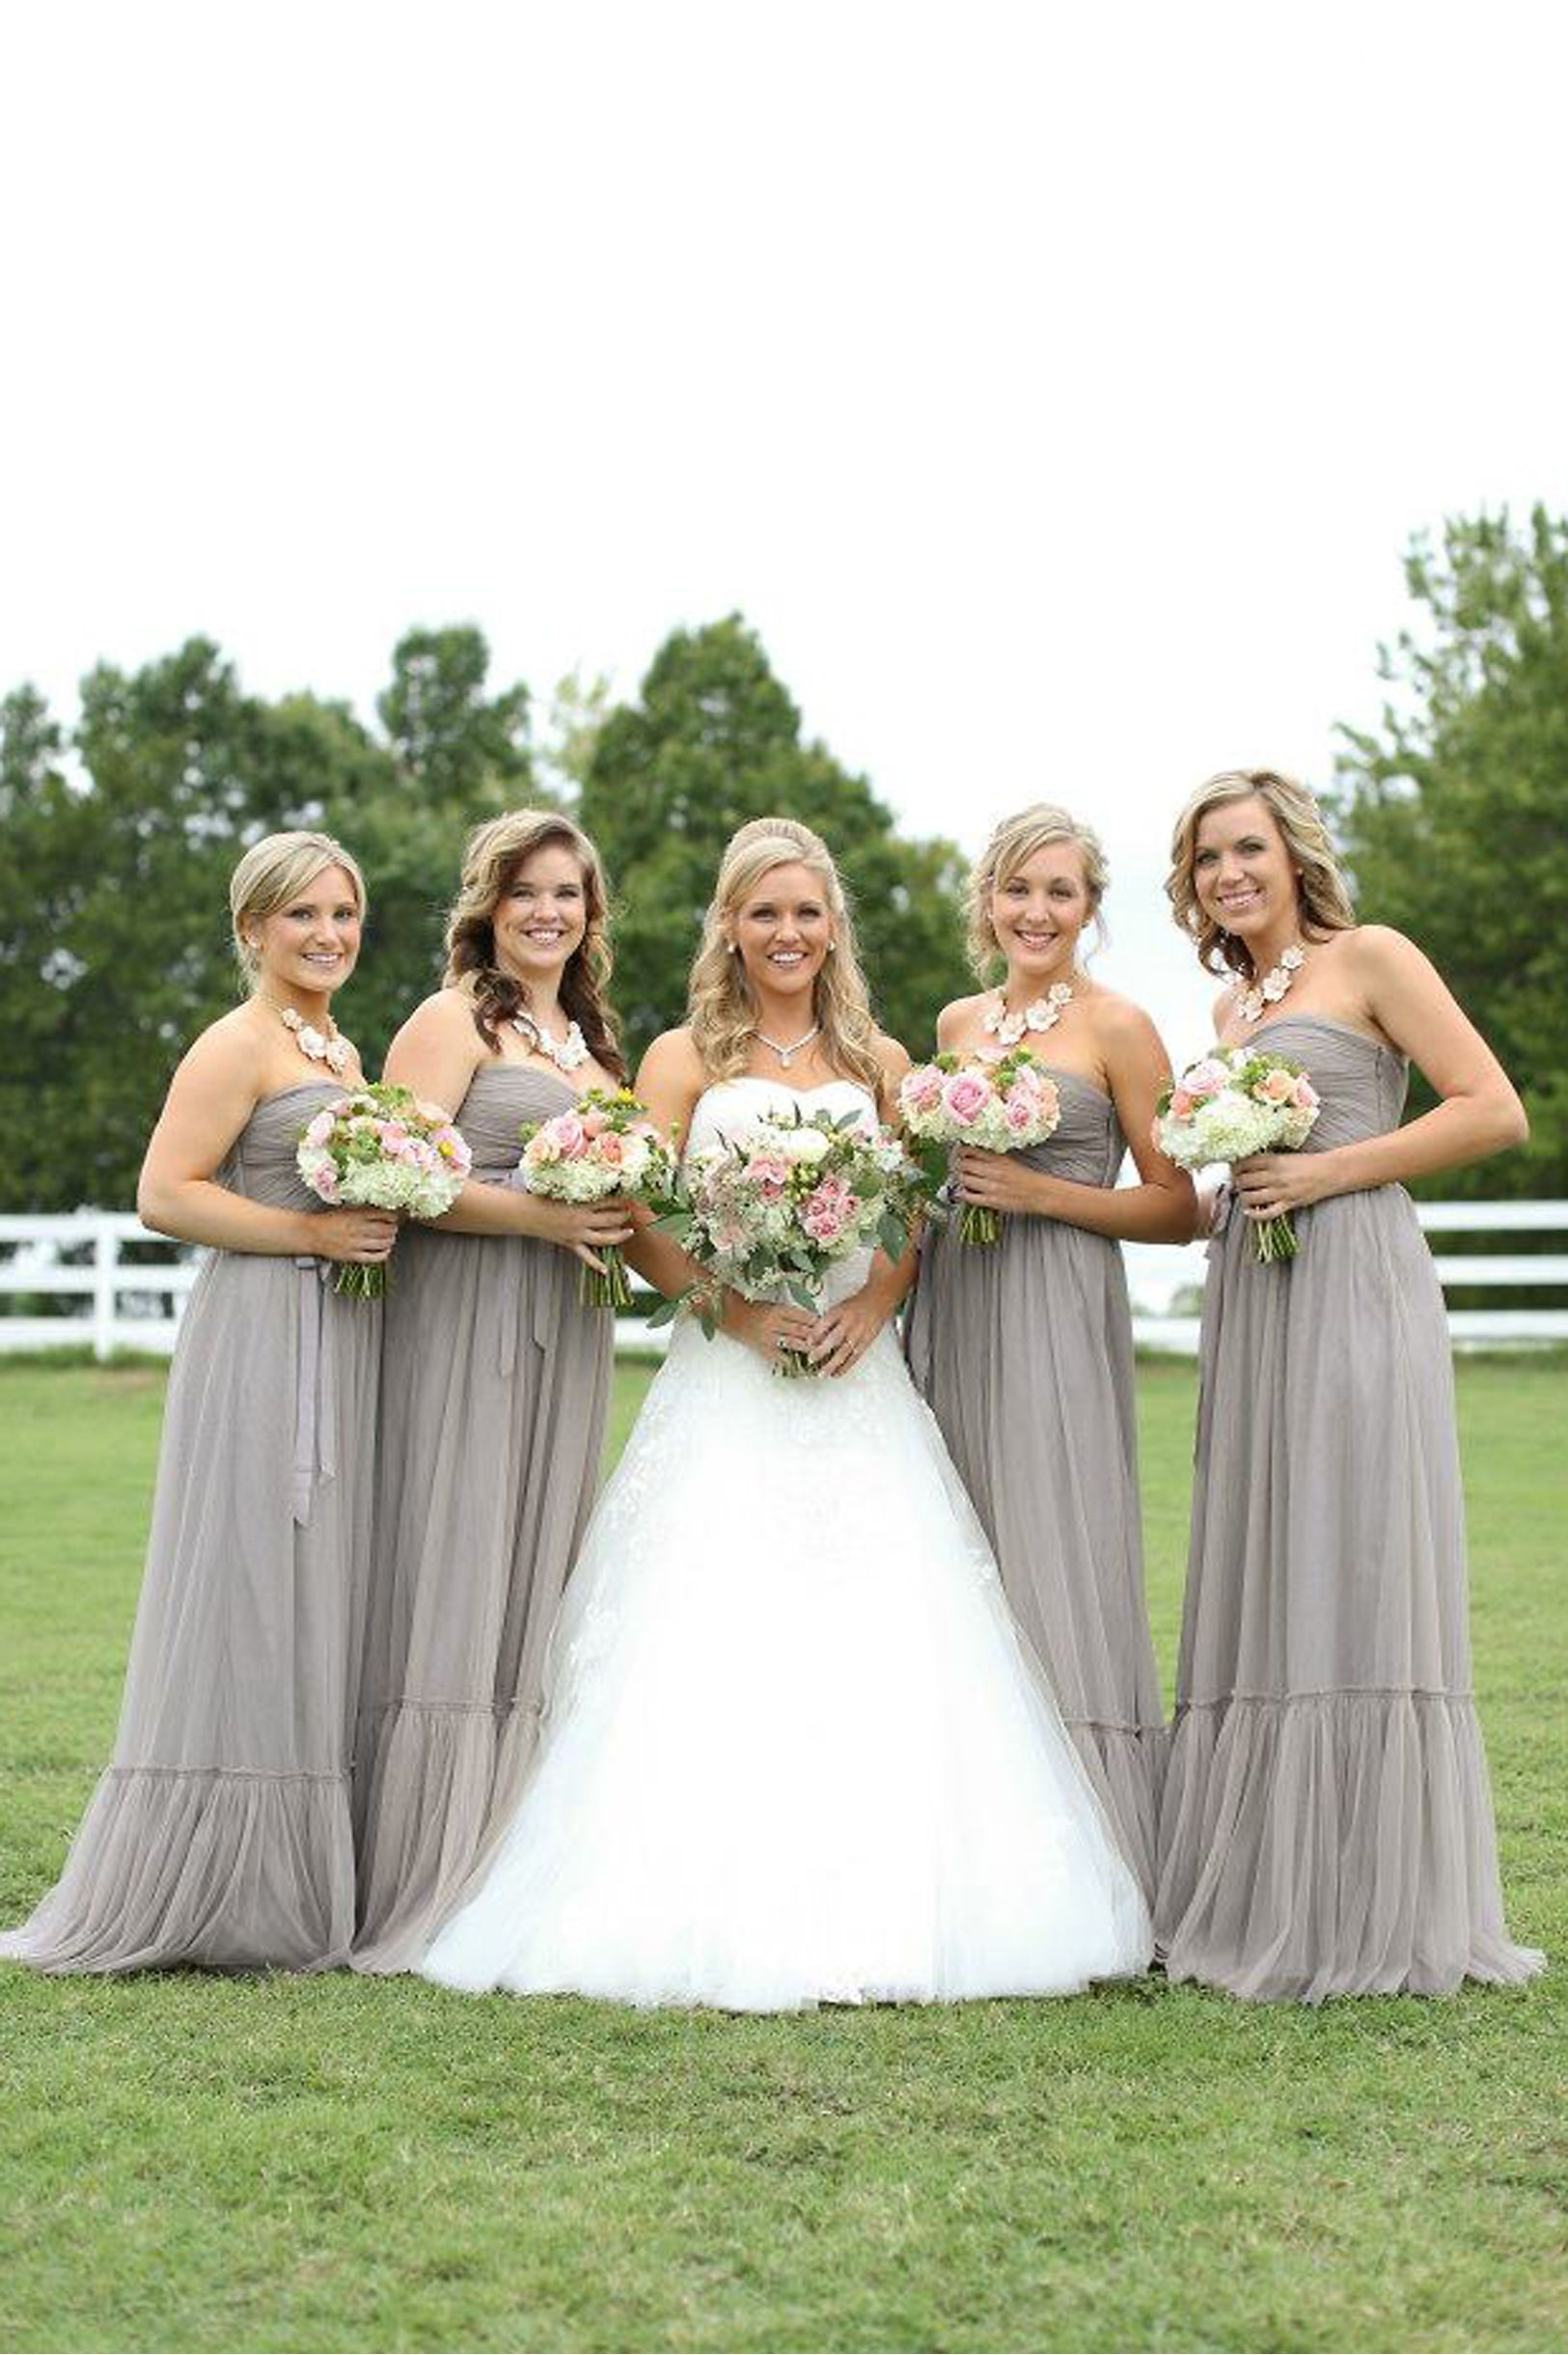 Niceties dress from bhldn bridesmaids dress pinterest grey bhldn french grey bridesmaid dresses love the colors with the same color chevron fabric for accents this would look amazing ombrellifo Gallery